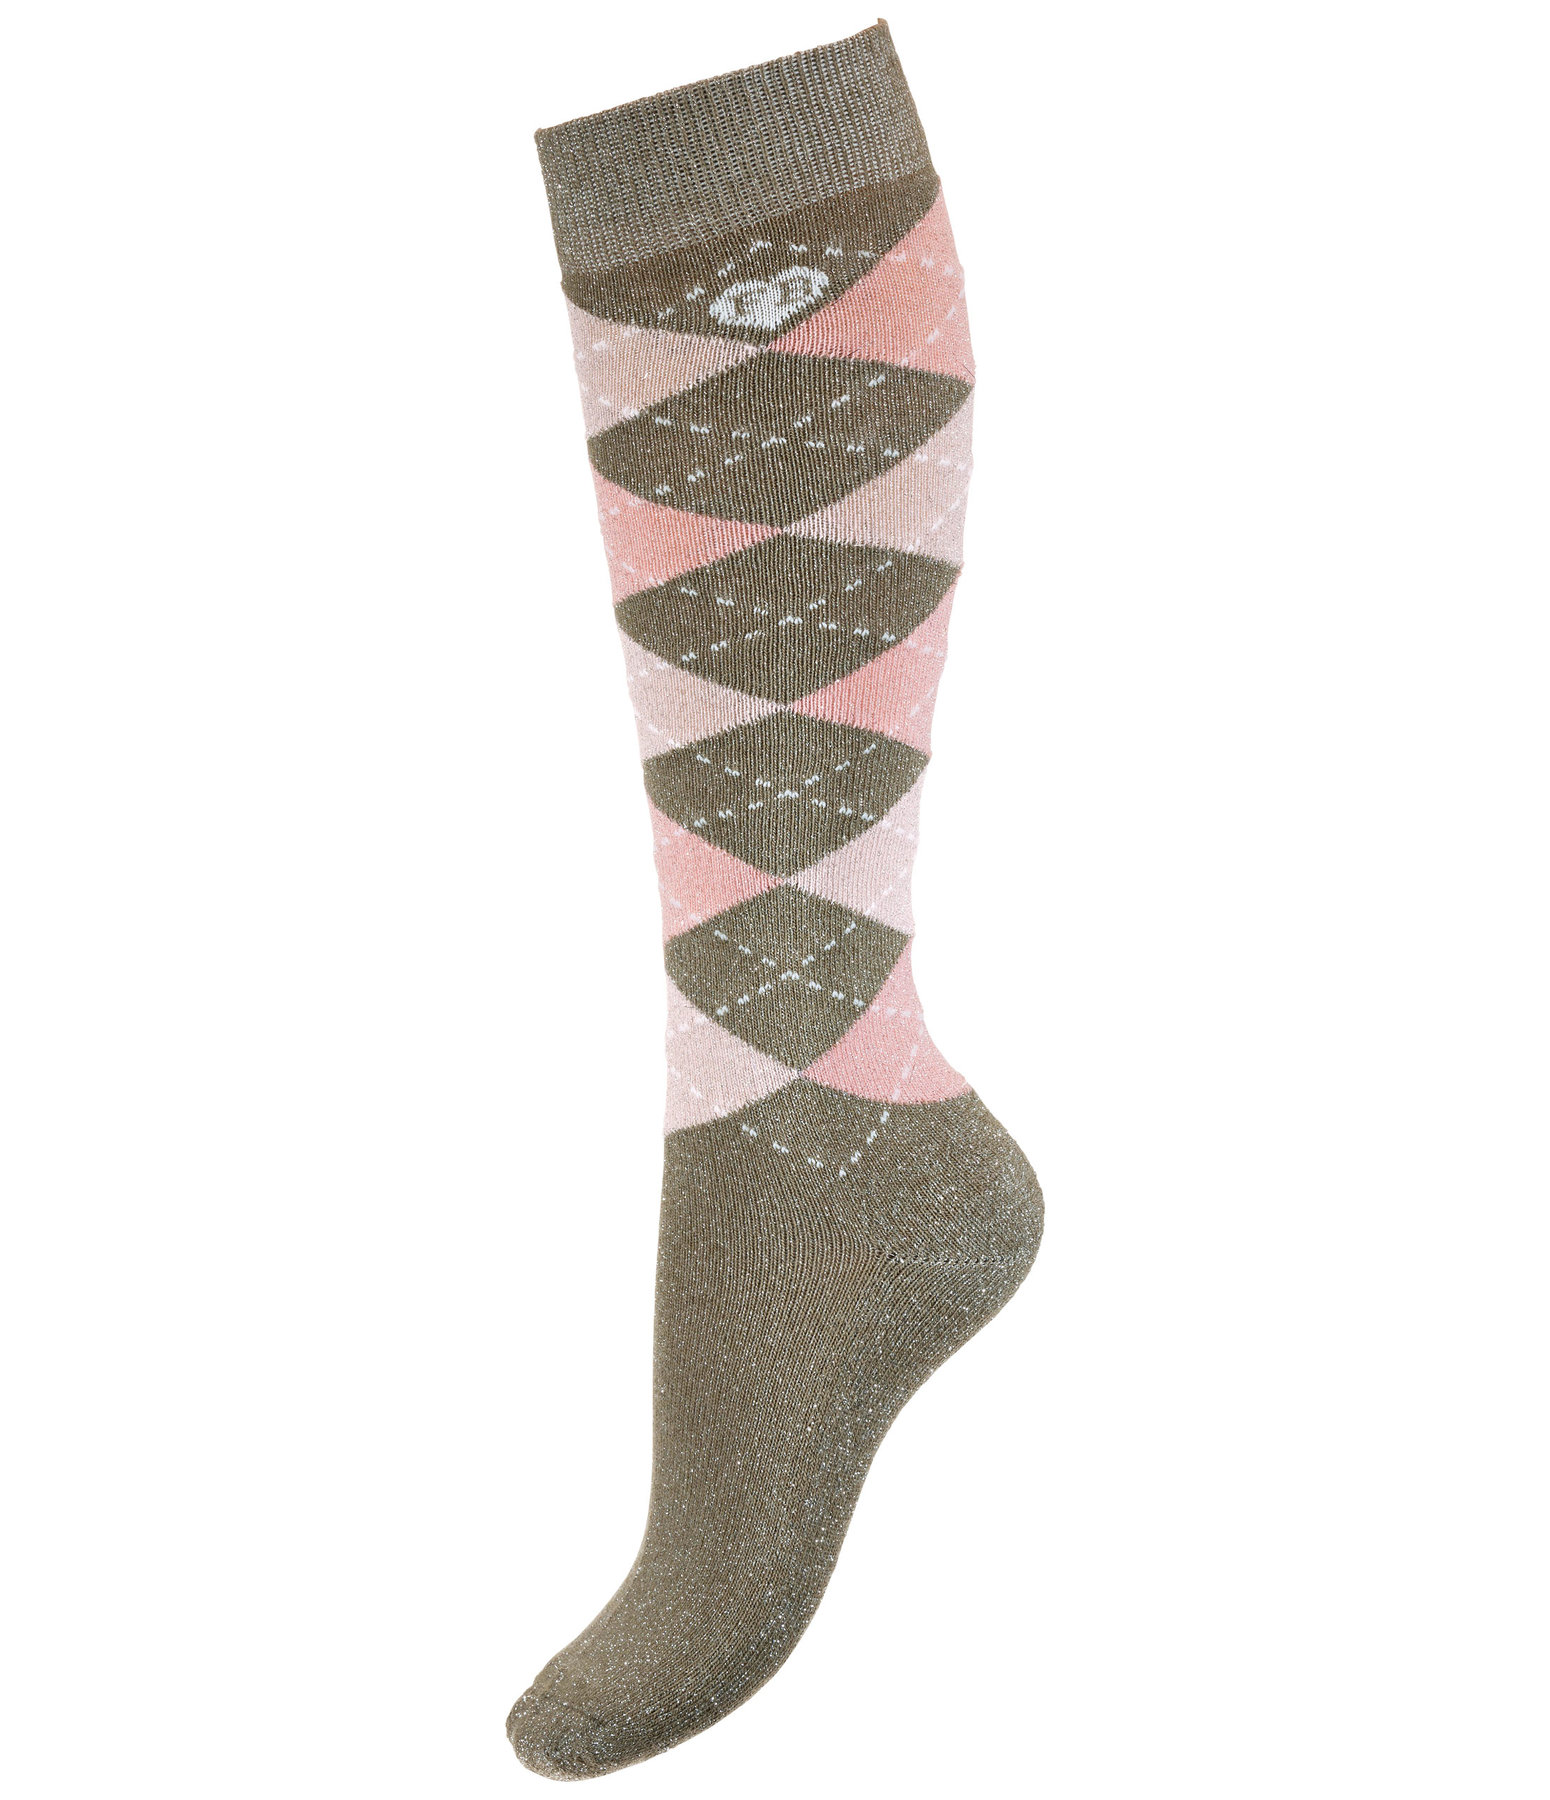 Children's Glitter Knee Socks Caro